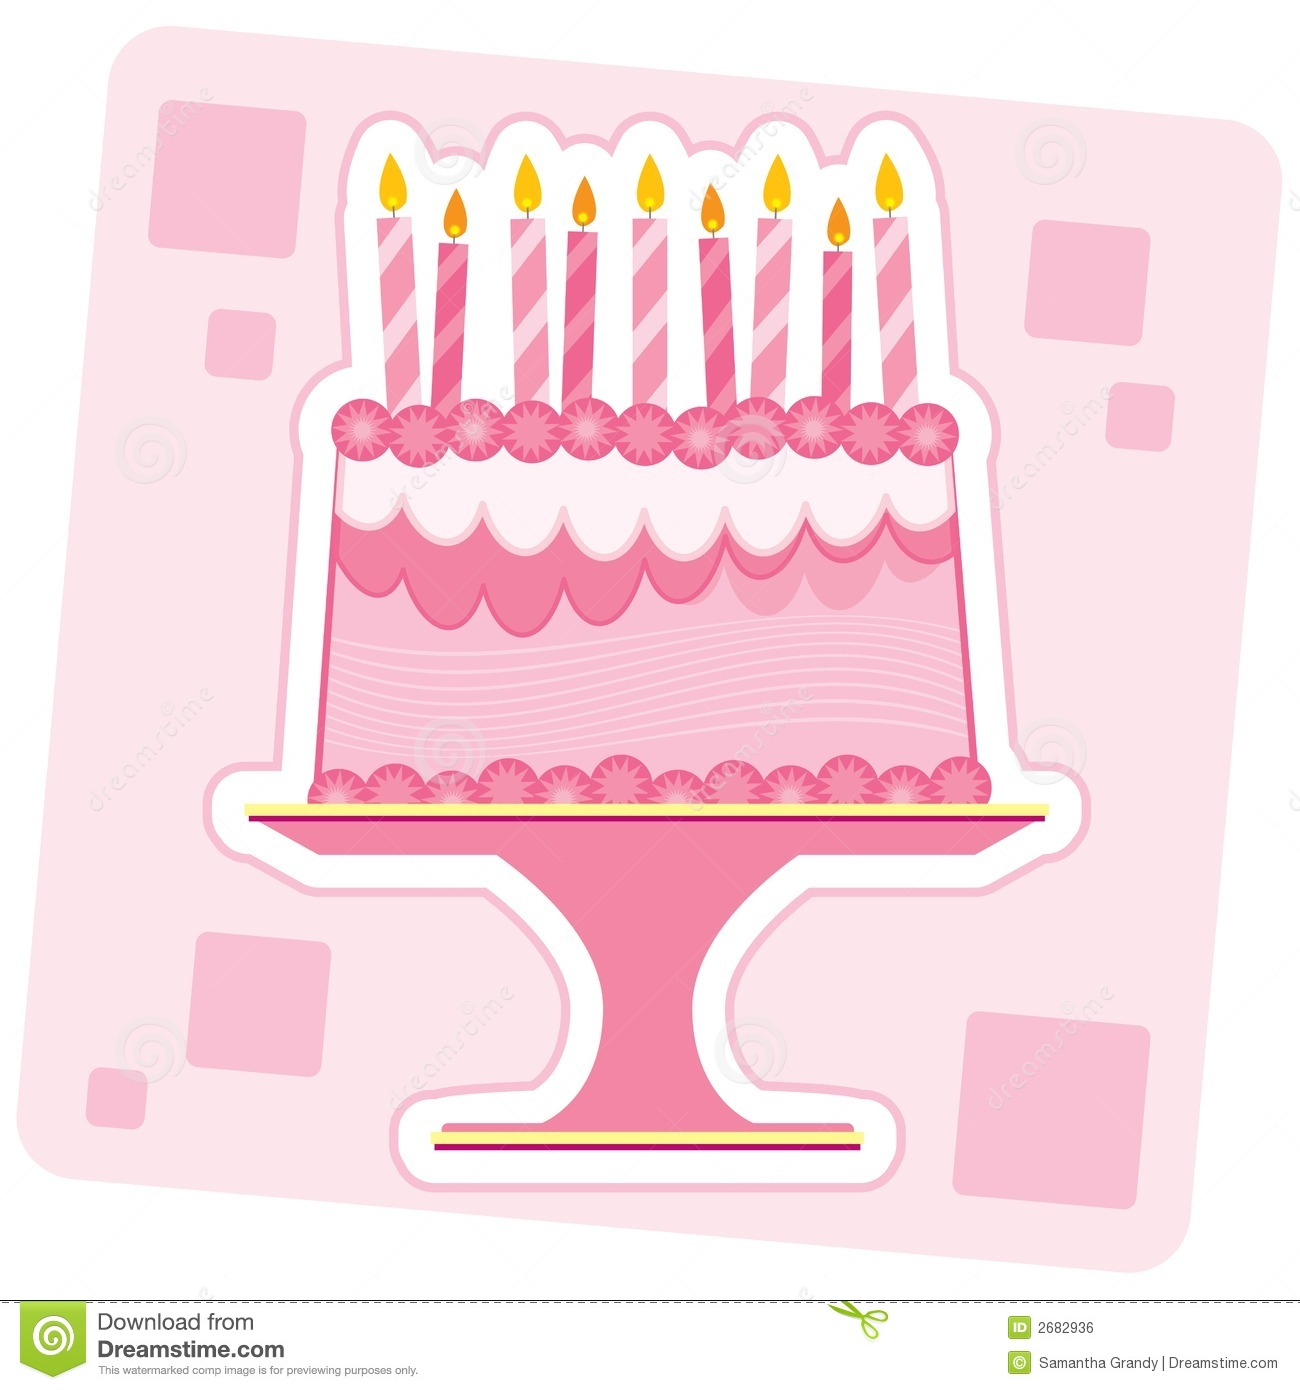 Royalty Free Birthday Images ~ Pink birthday cake stock vector image of treat yellow